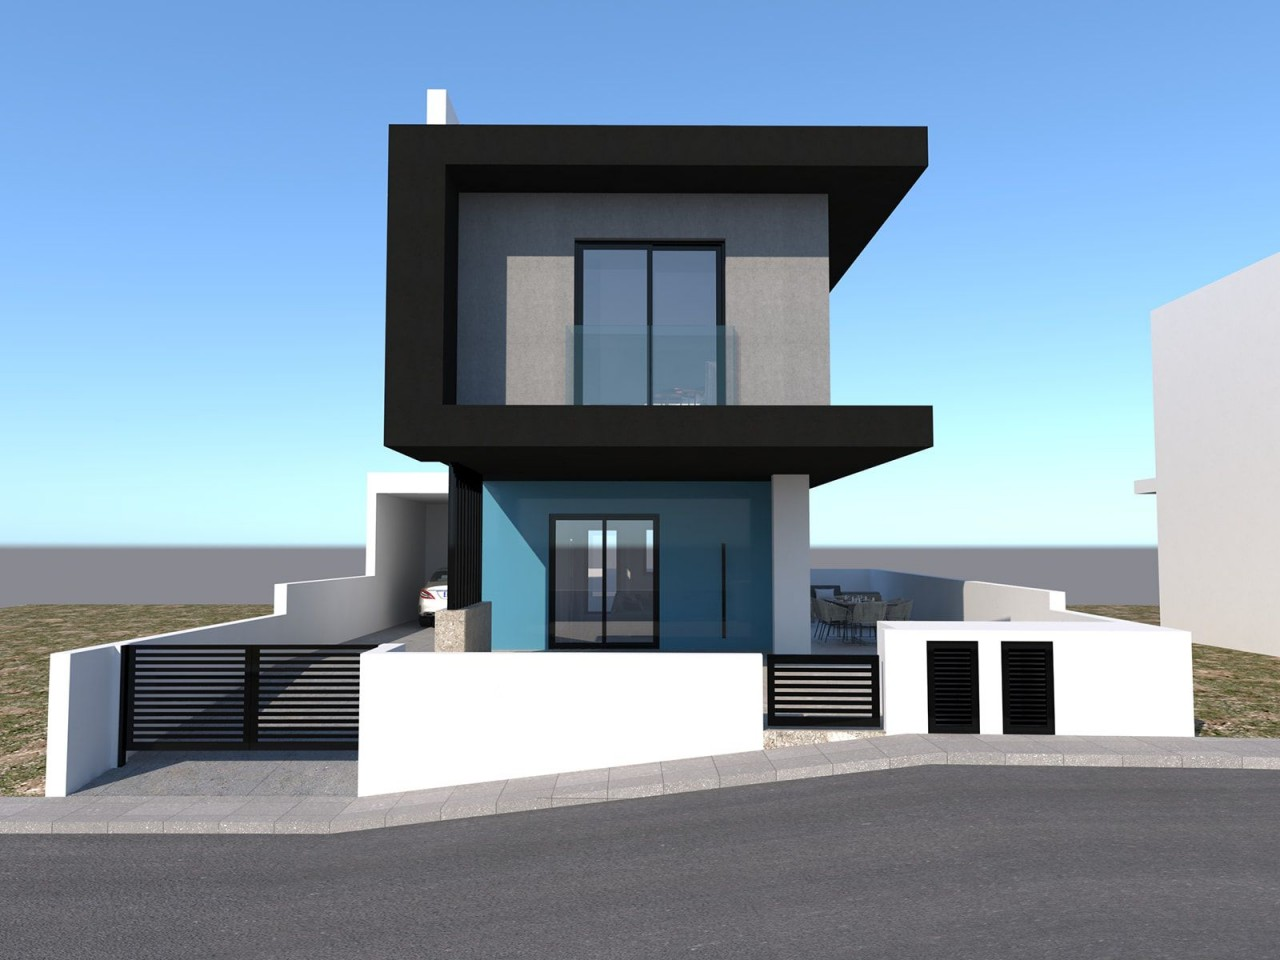 FC-27066: House (Detached) in Agios Athanasios, Limassol for Sale - #2